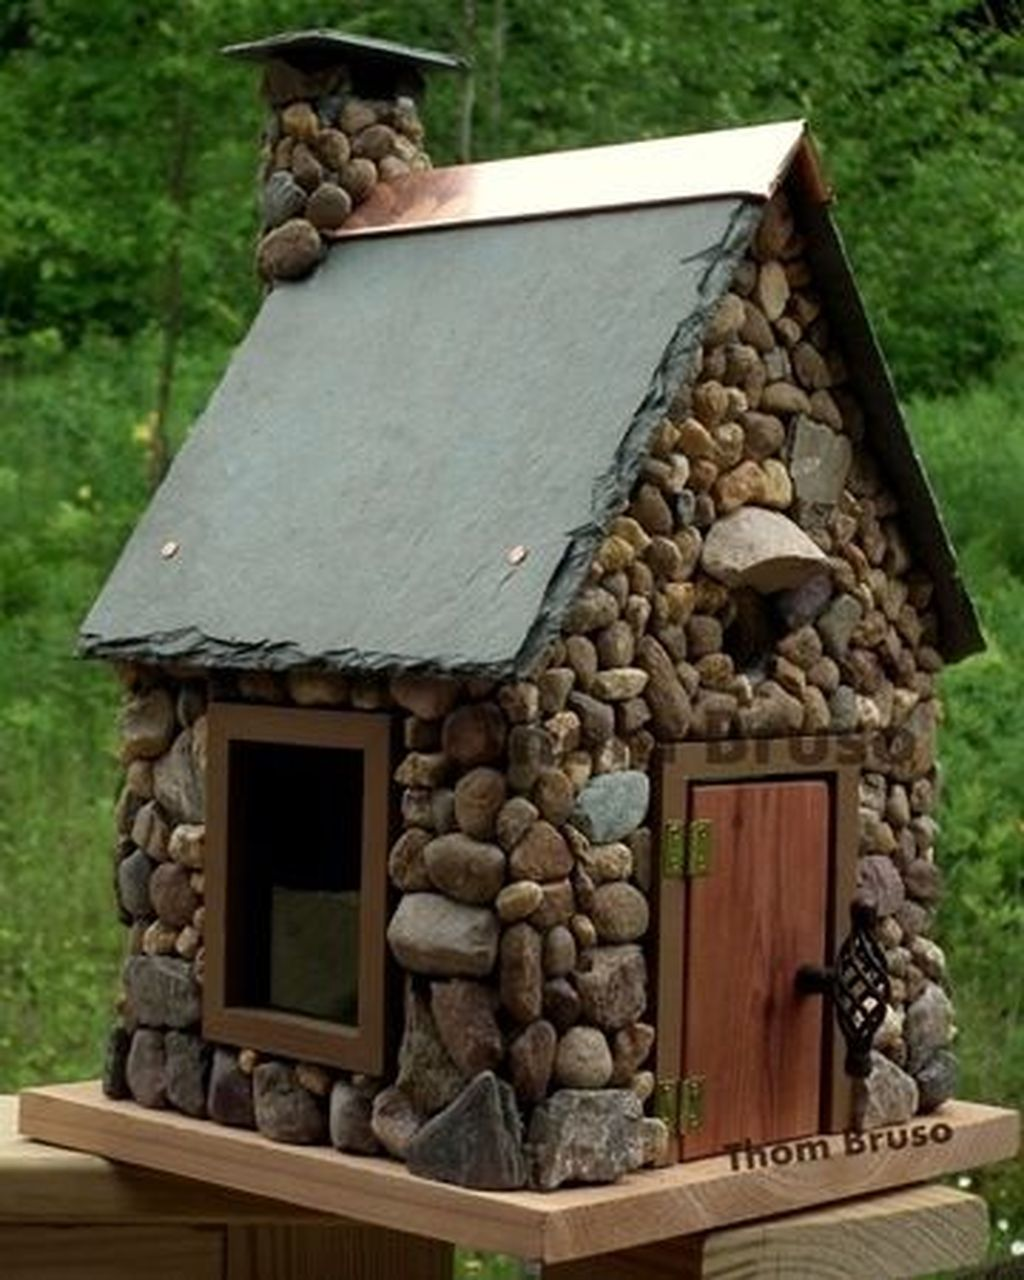 50 Amazing Bird House Ideas For Your Backyard Space